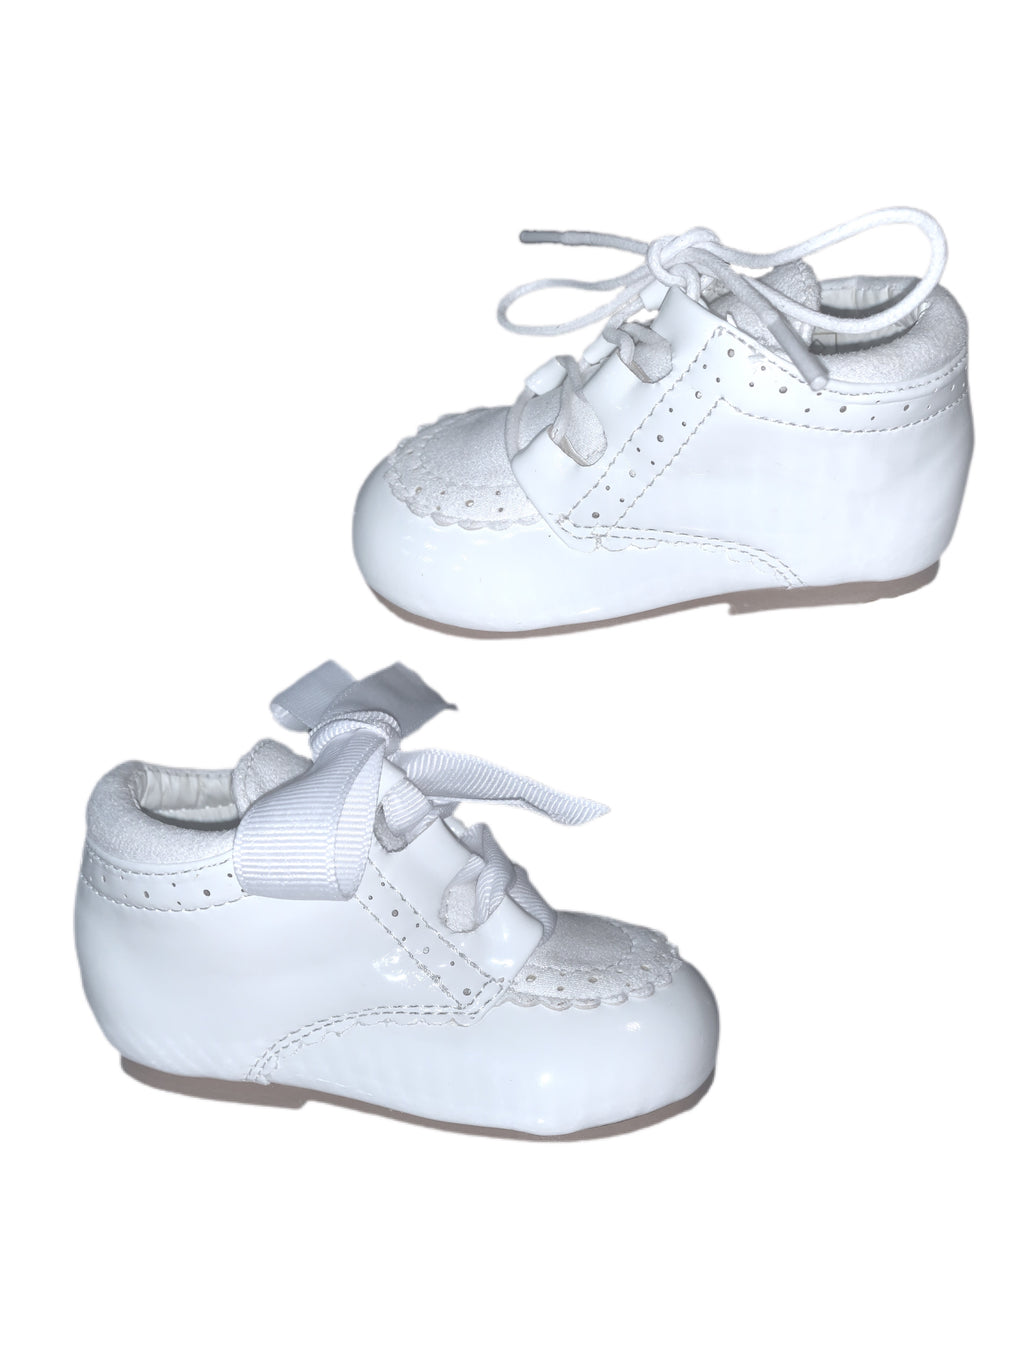 Unisex white shoes